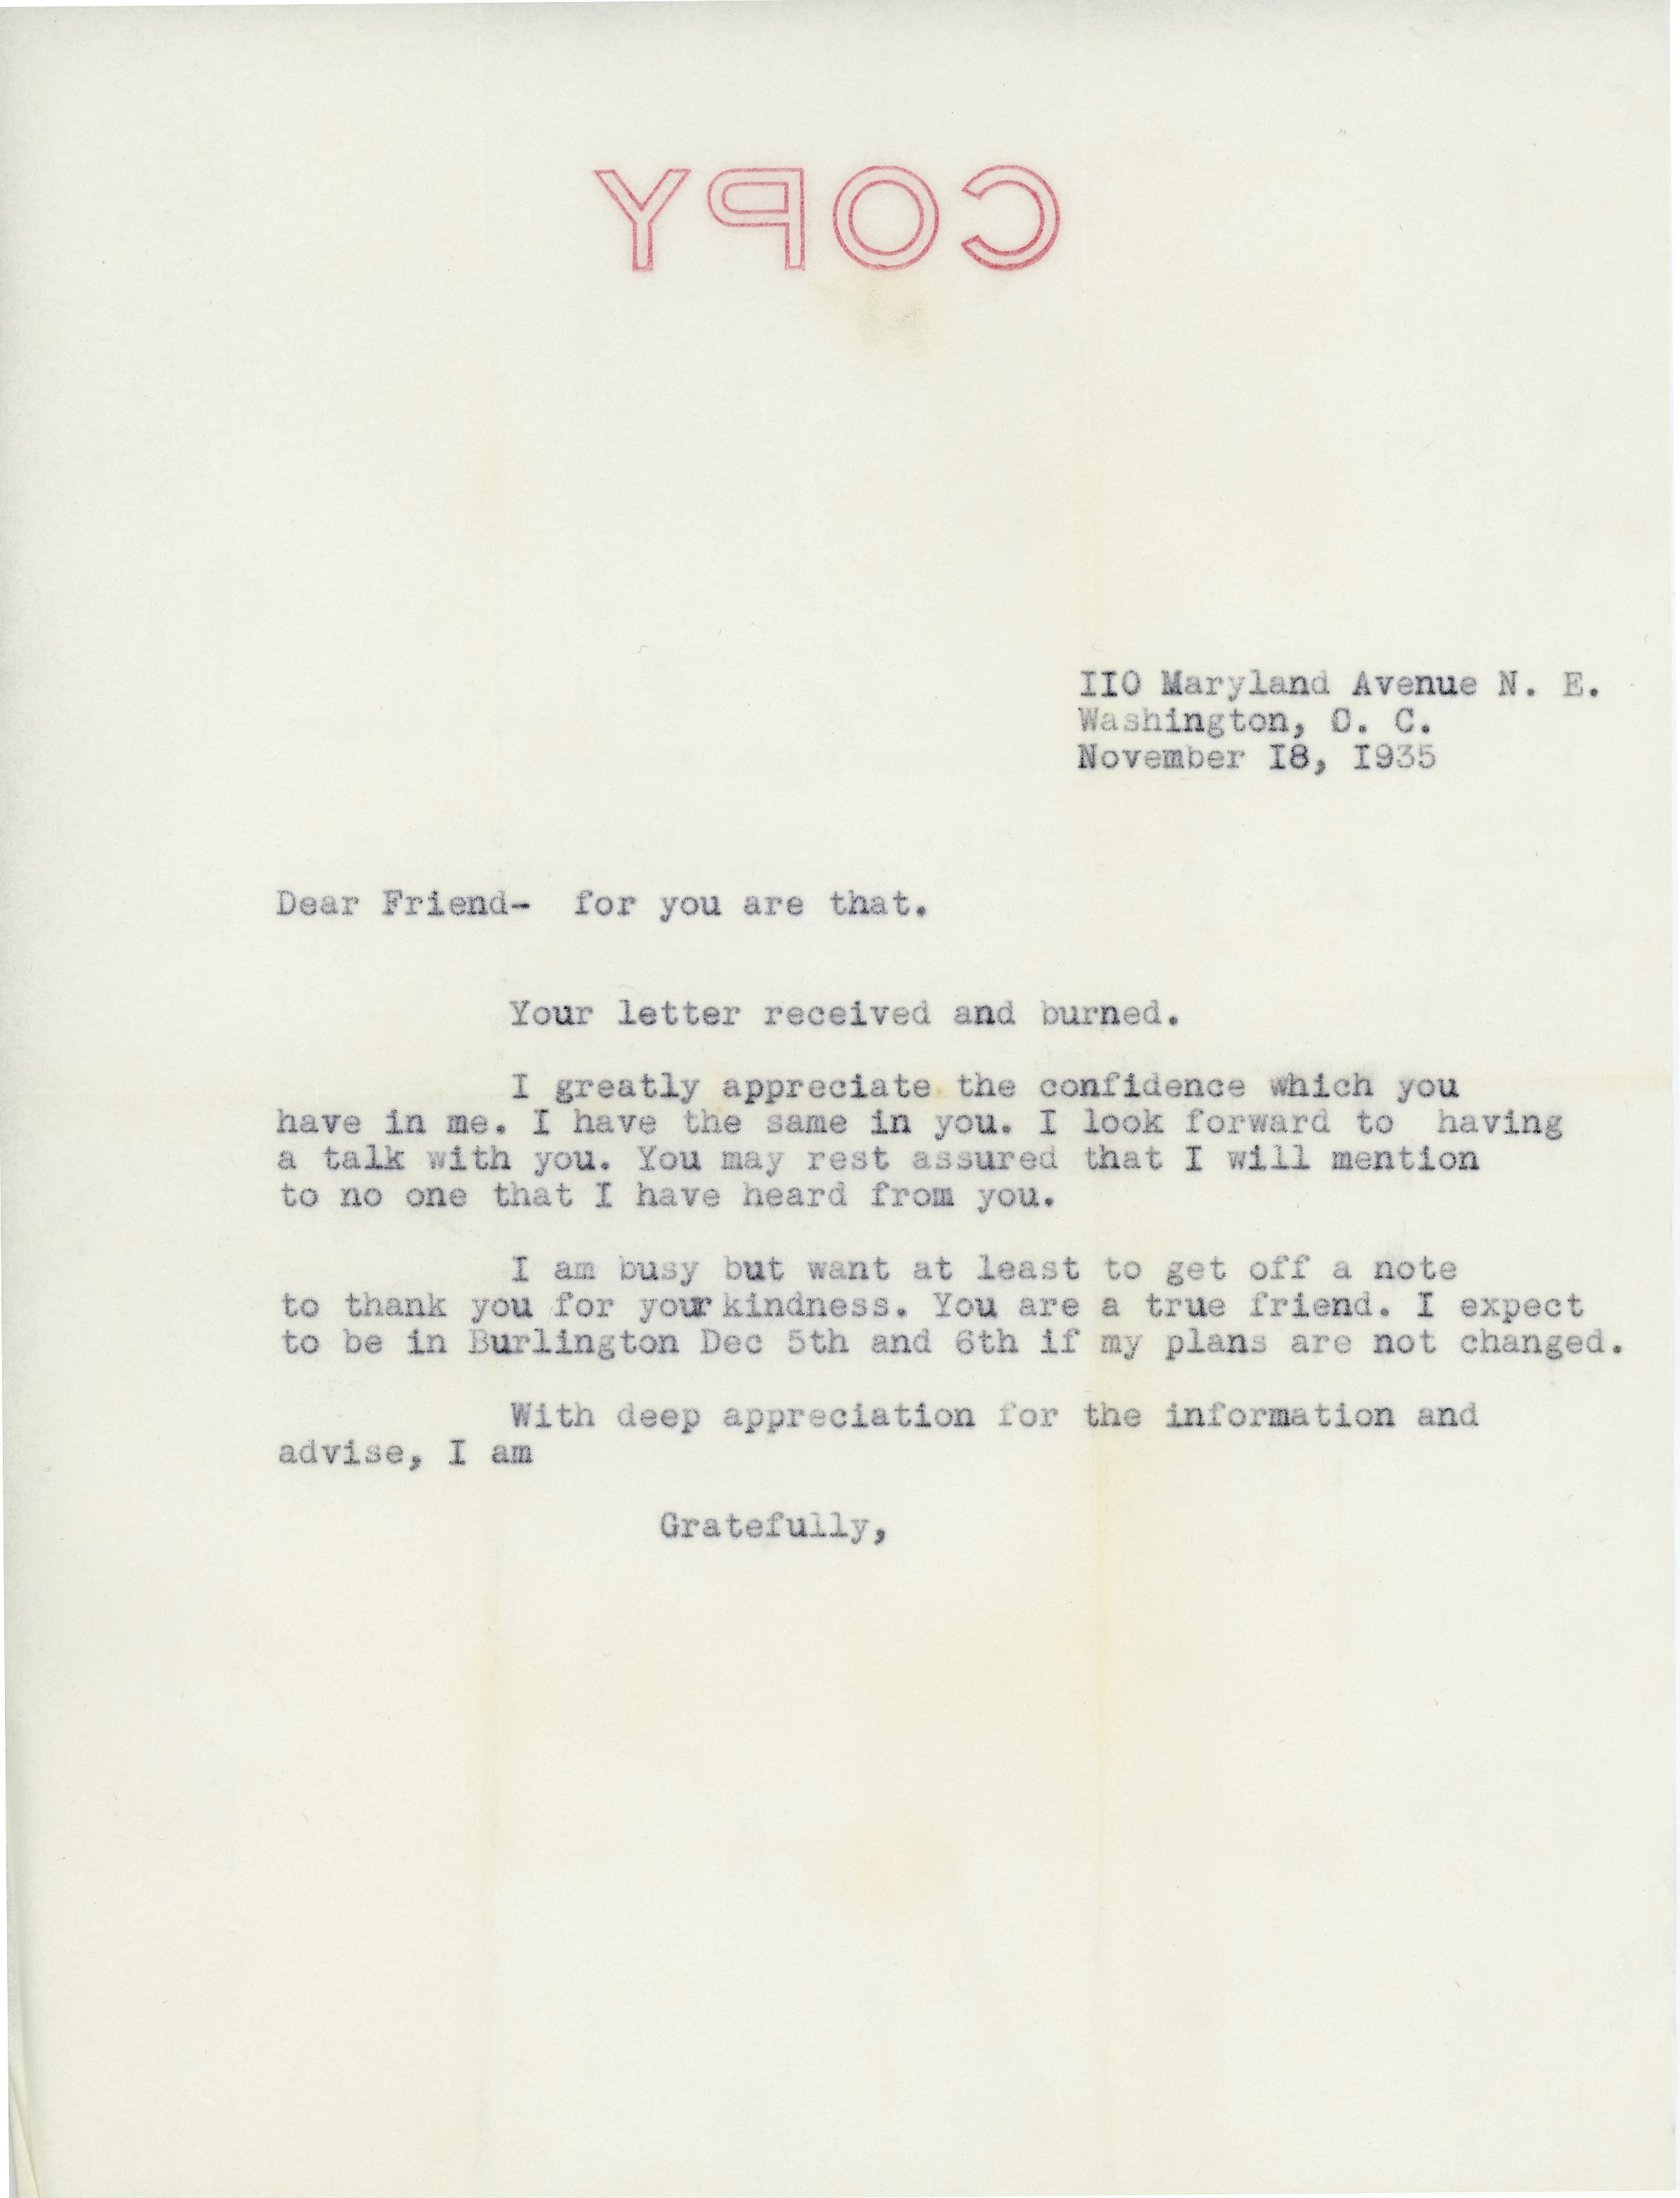 Consuelo N. Bailey  to Charles Plumley, 1936 November 18